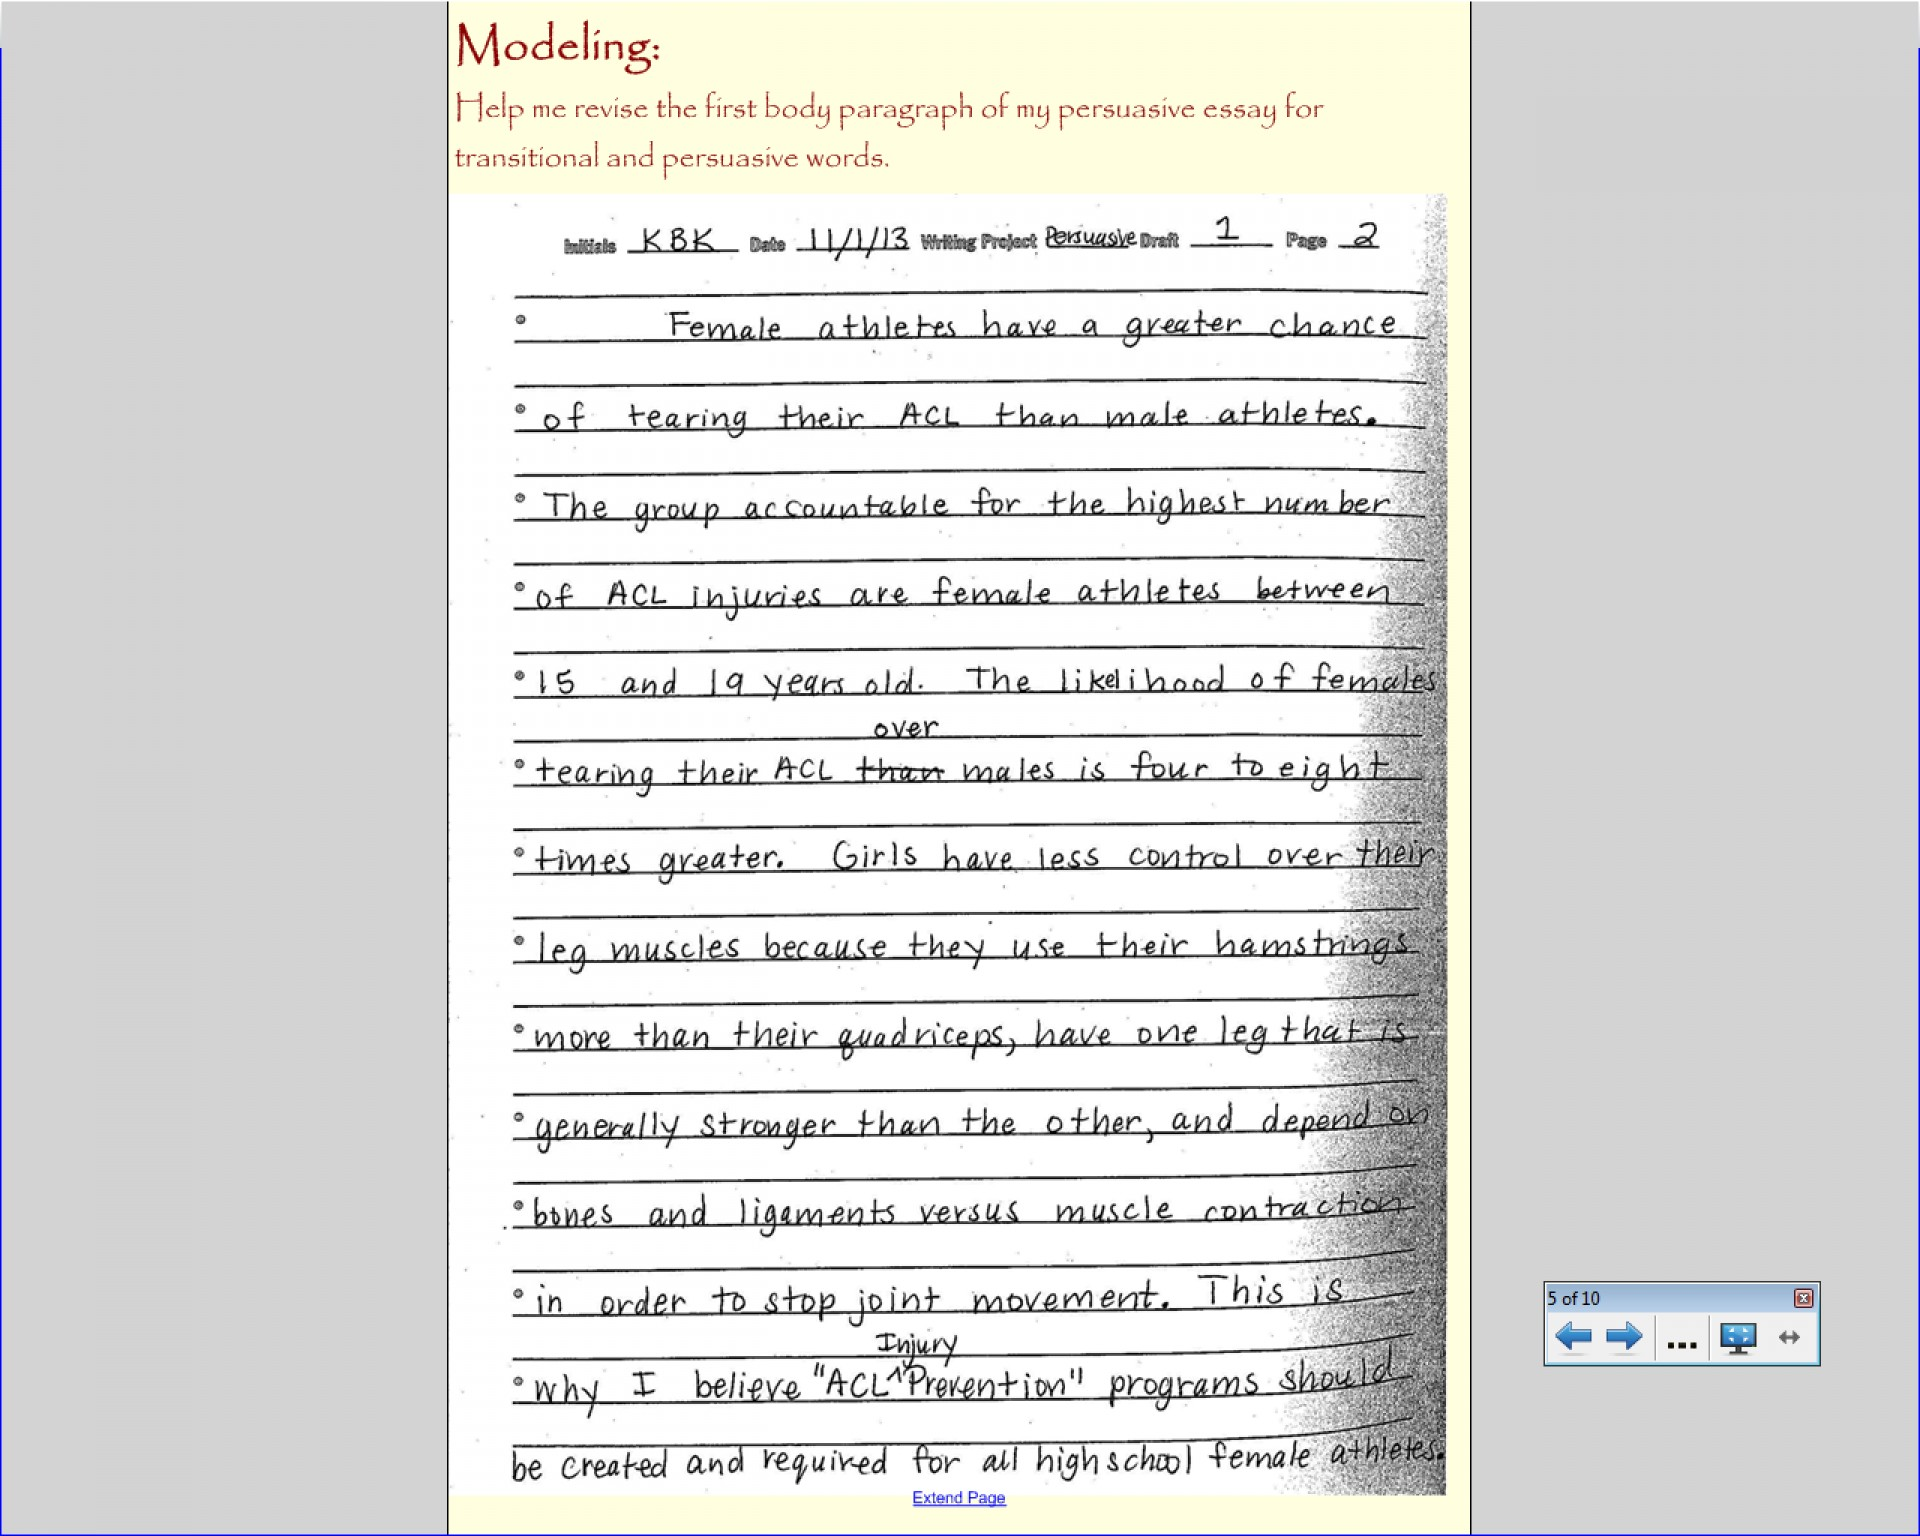 004 Revise My Essay Paper Top Helpful Homework Hints Image Help Me Why Should I Can Someone And Edit For Free Online College How Do Archaicawful 1920